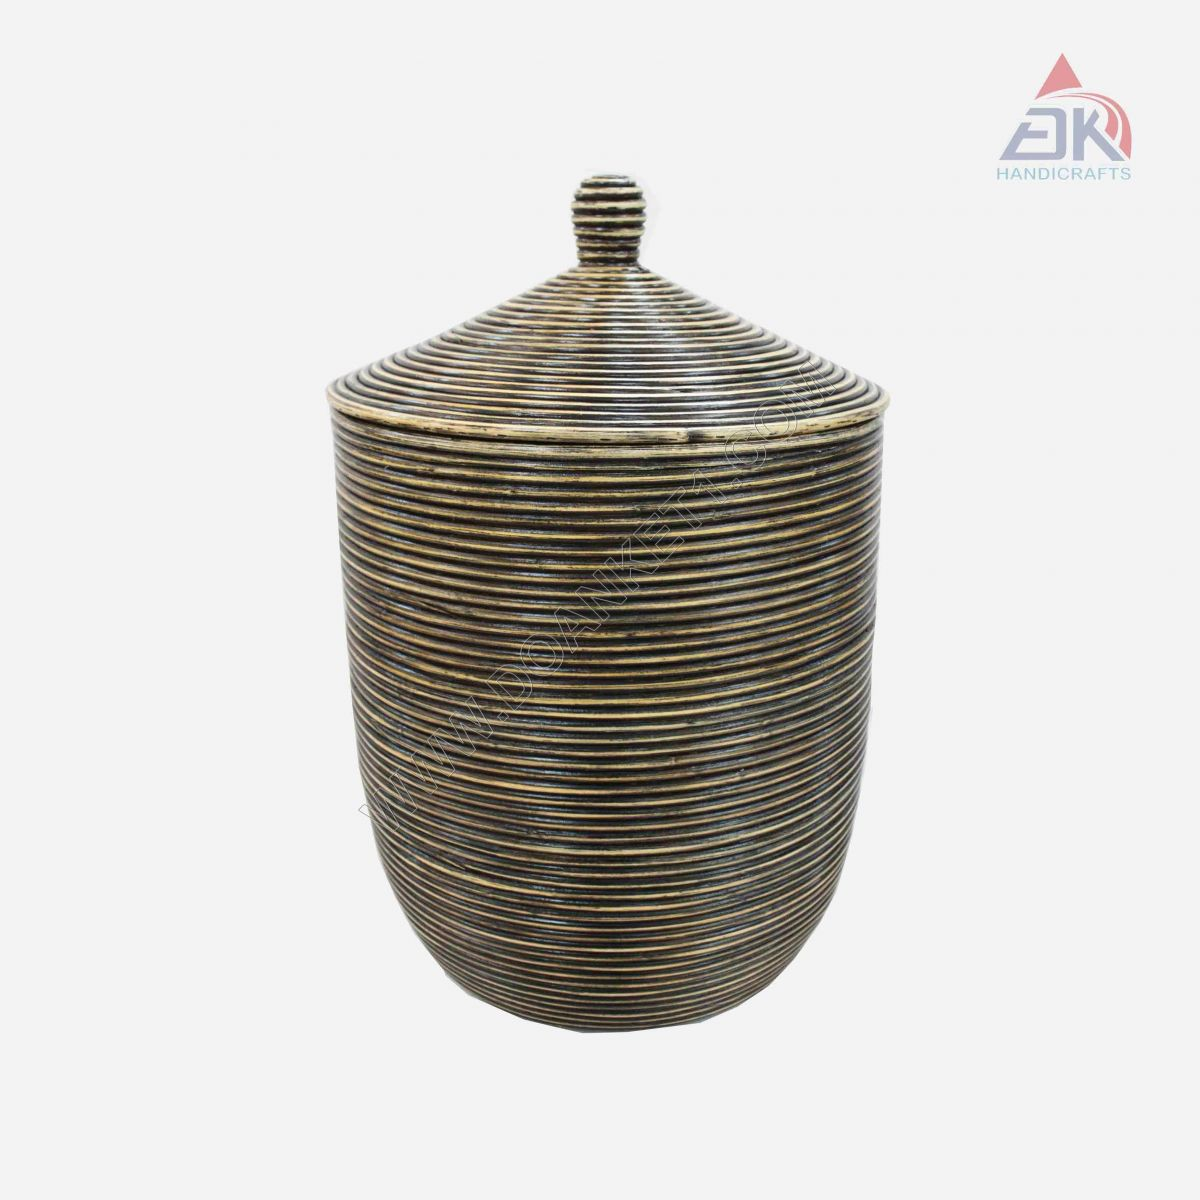 Coiled Basket With Lid # DK46